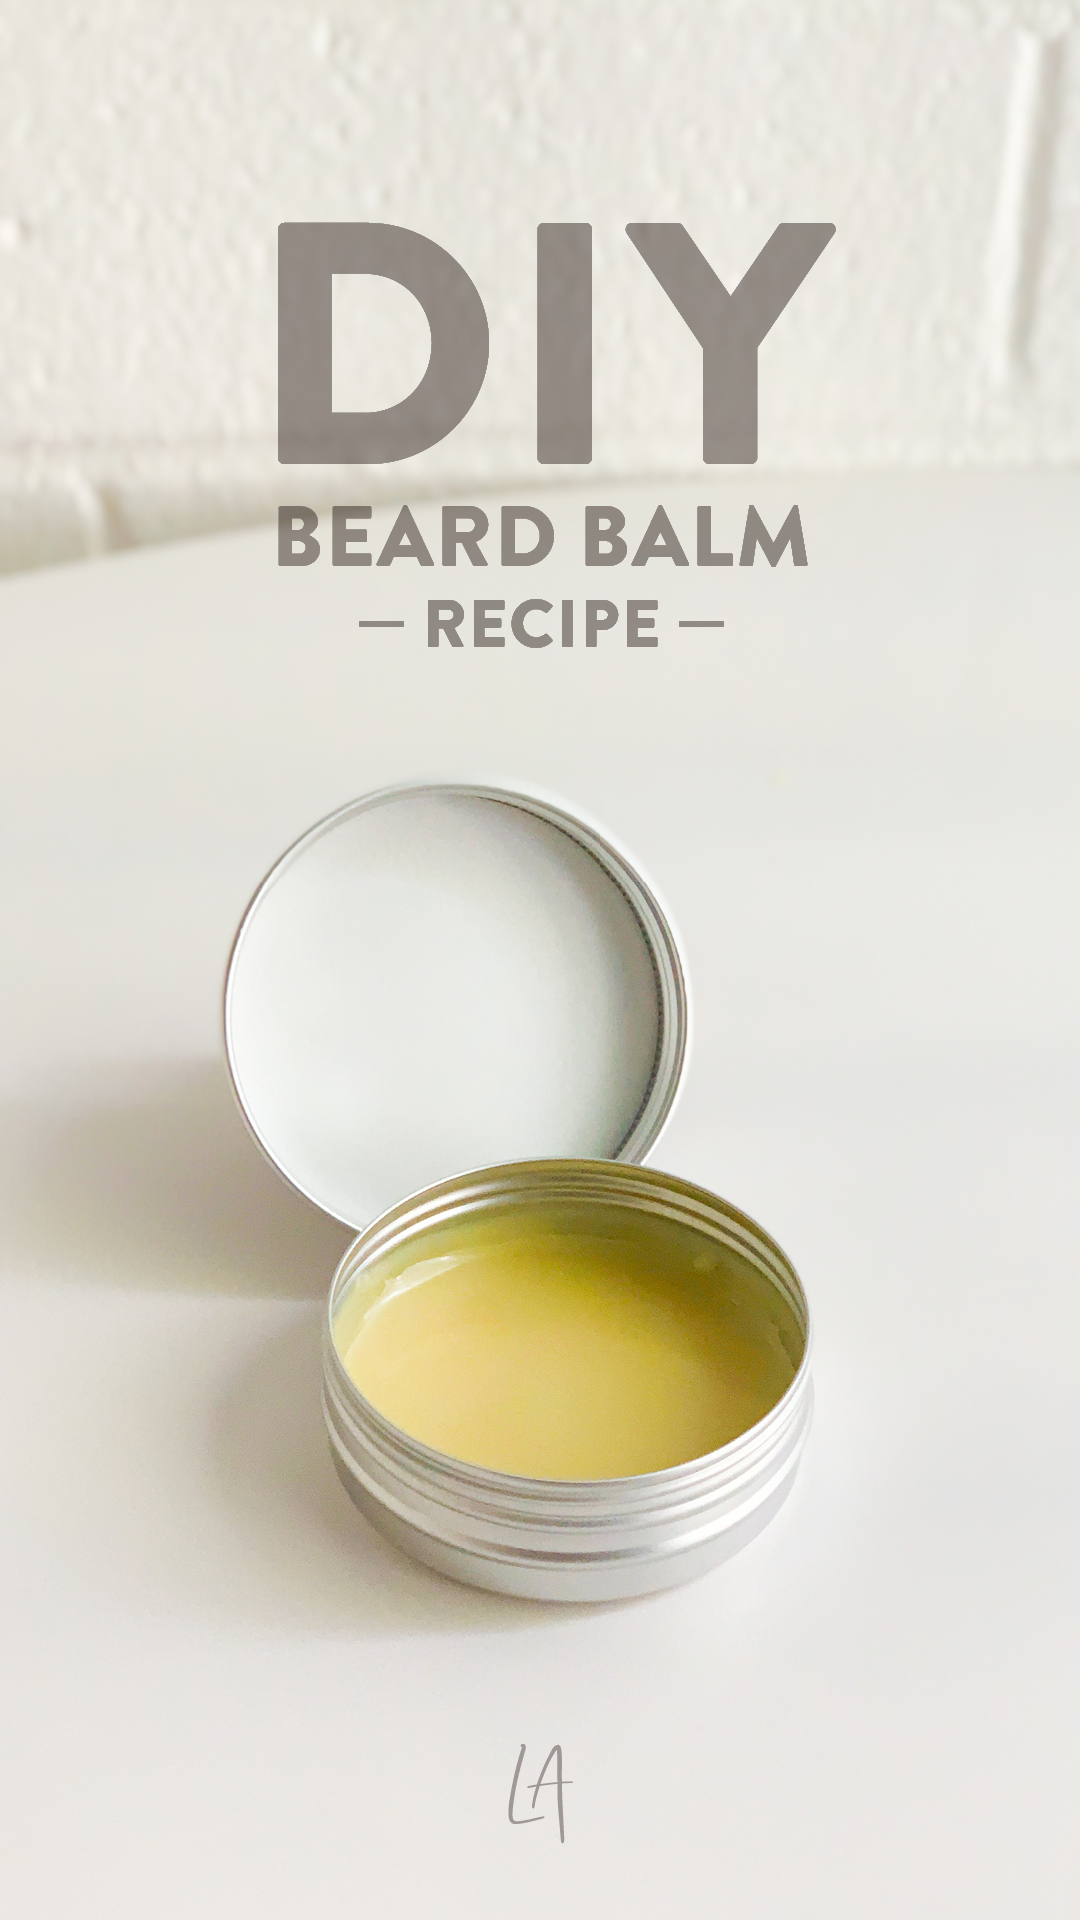 How to make beard balm at home